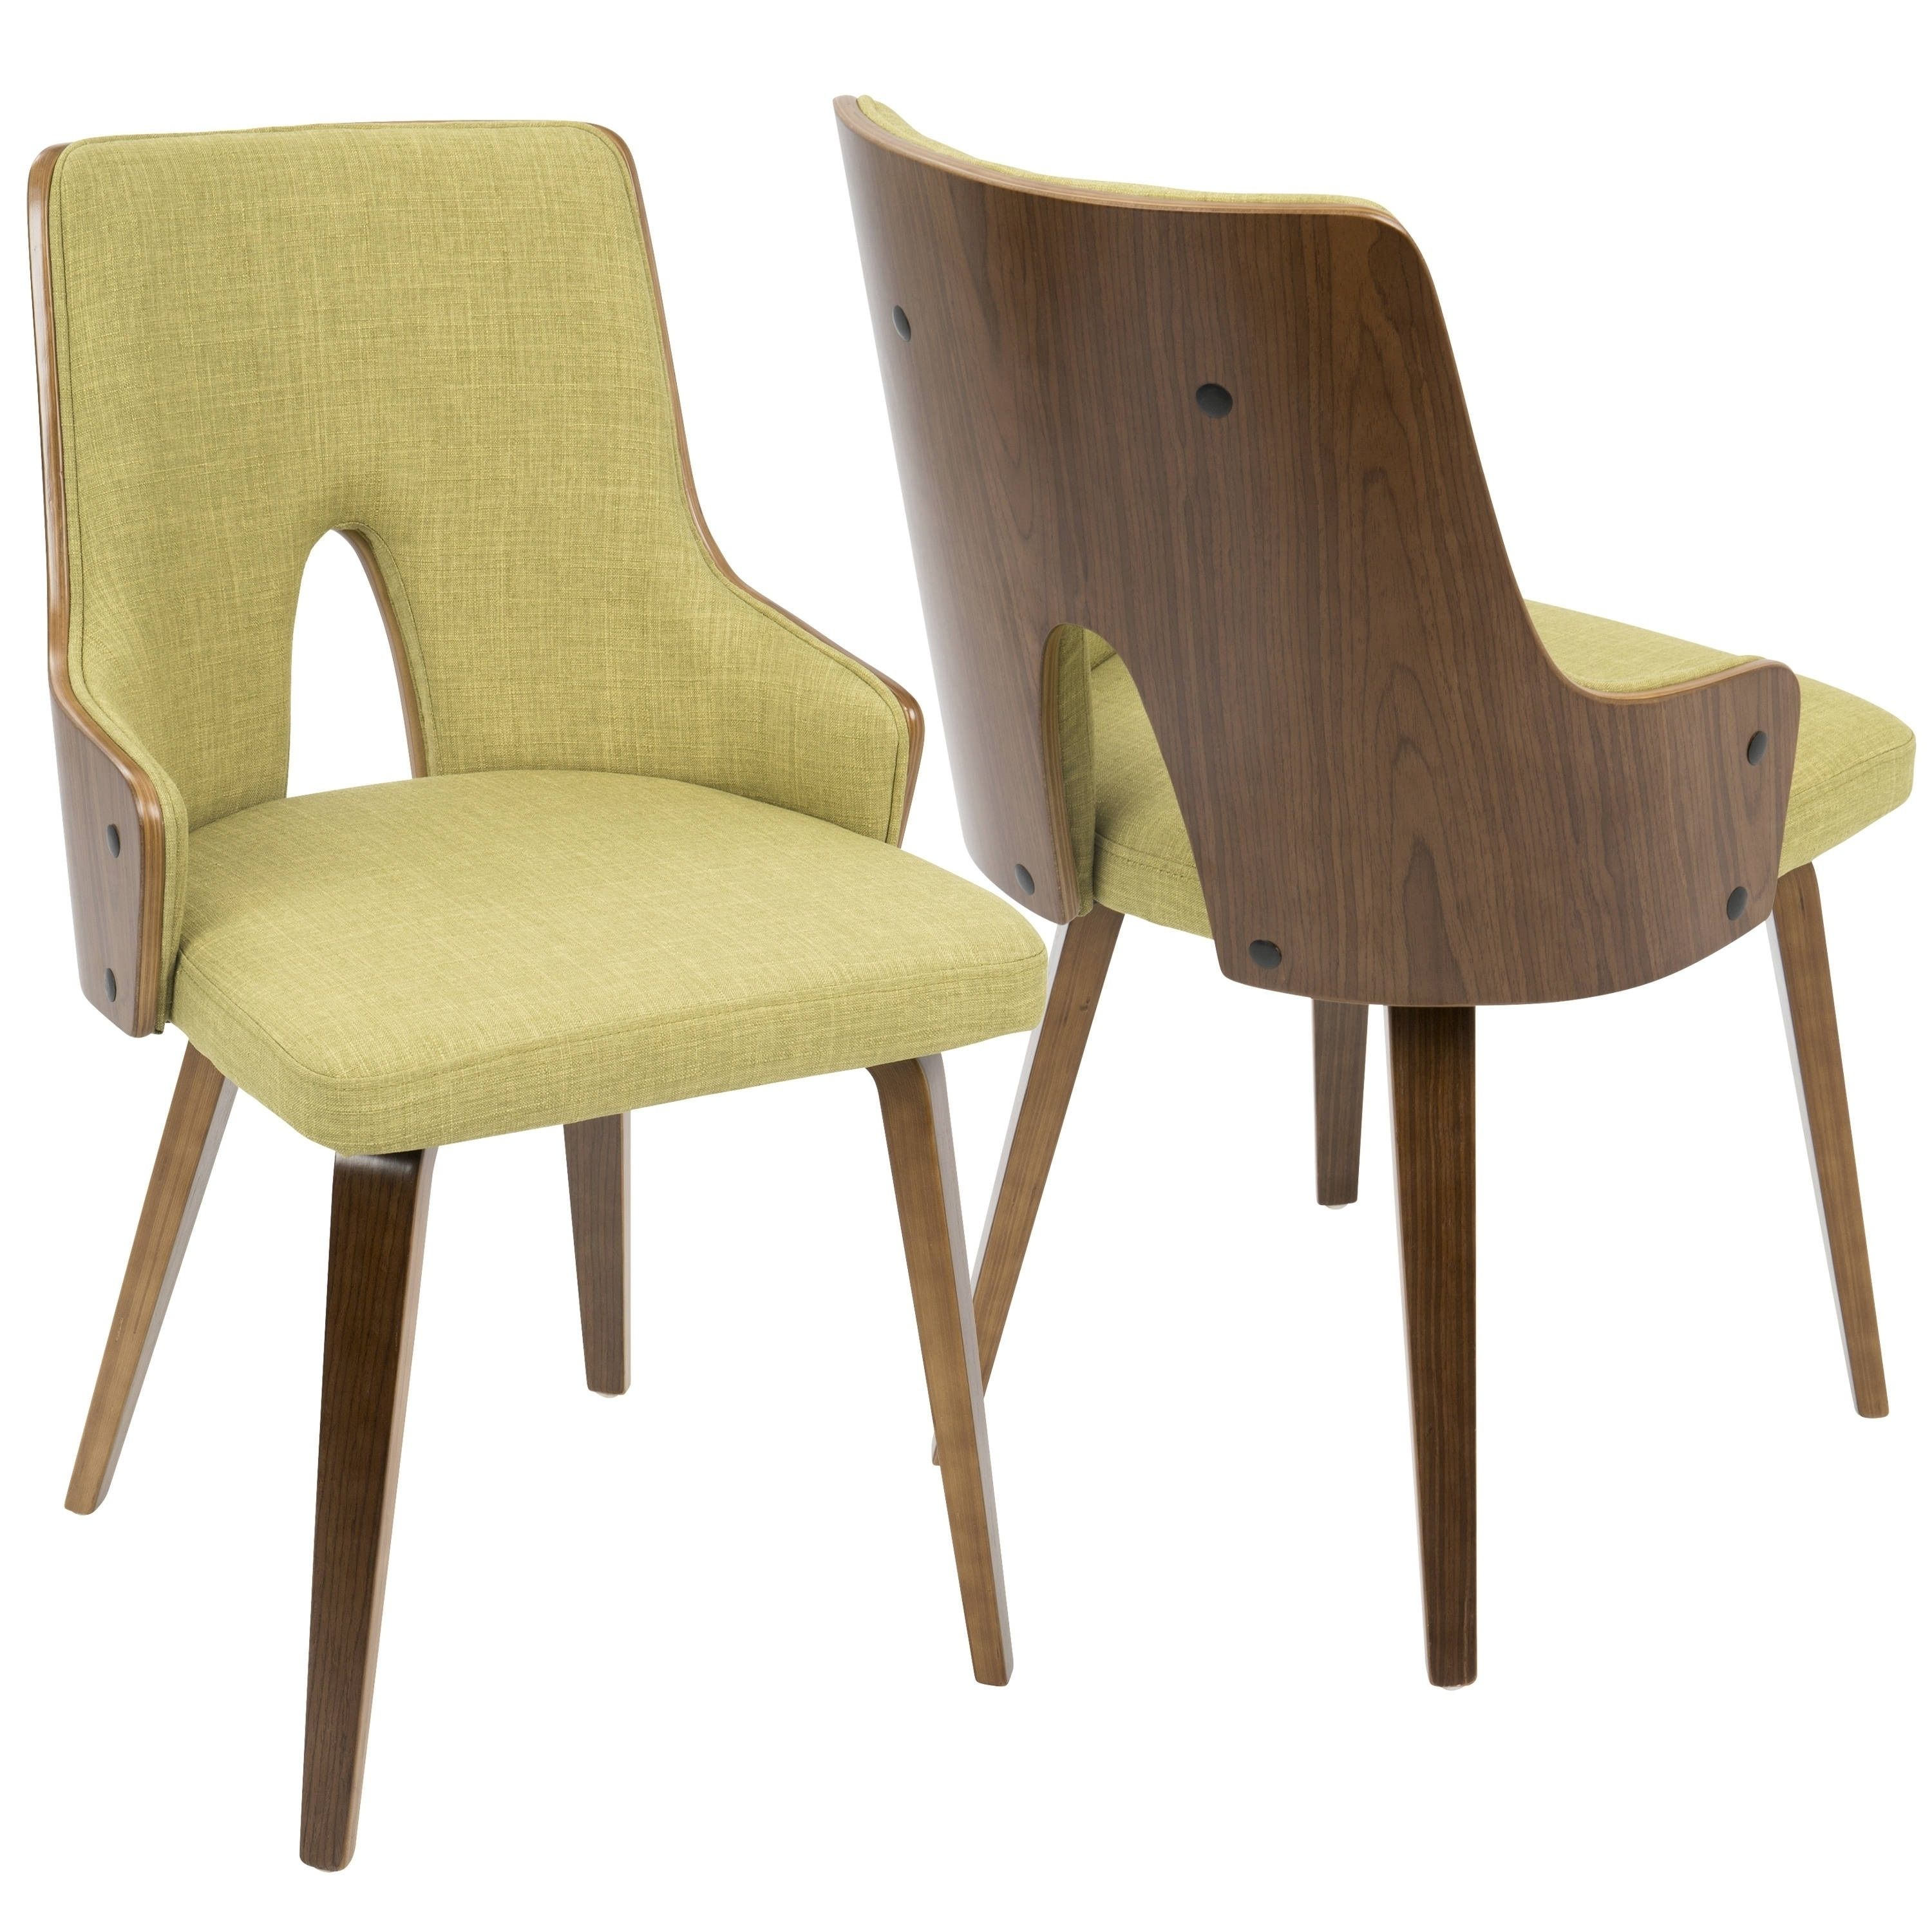 Lumisource stella mid century modern padded dining accent chair set of 2